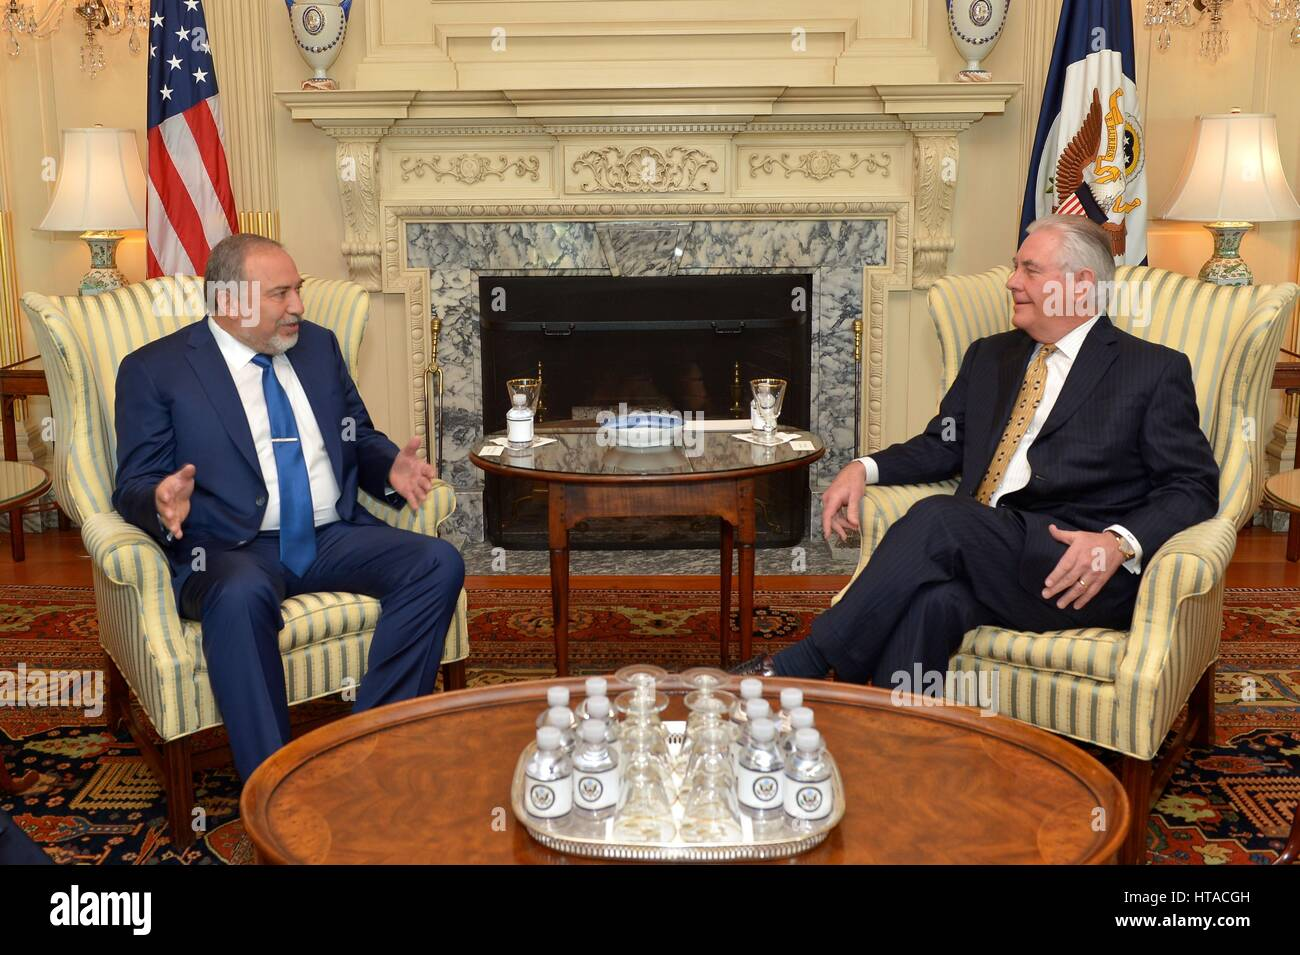 Washington DC, USA. 8th March 2017. US Secretary of State Rex Tillerson meets with Israeli Minister of Defense Avigdor - Stock Image